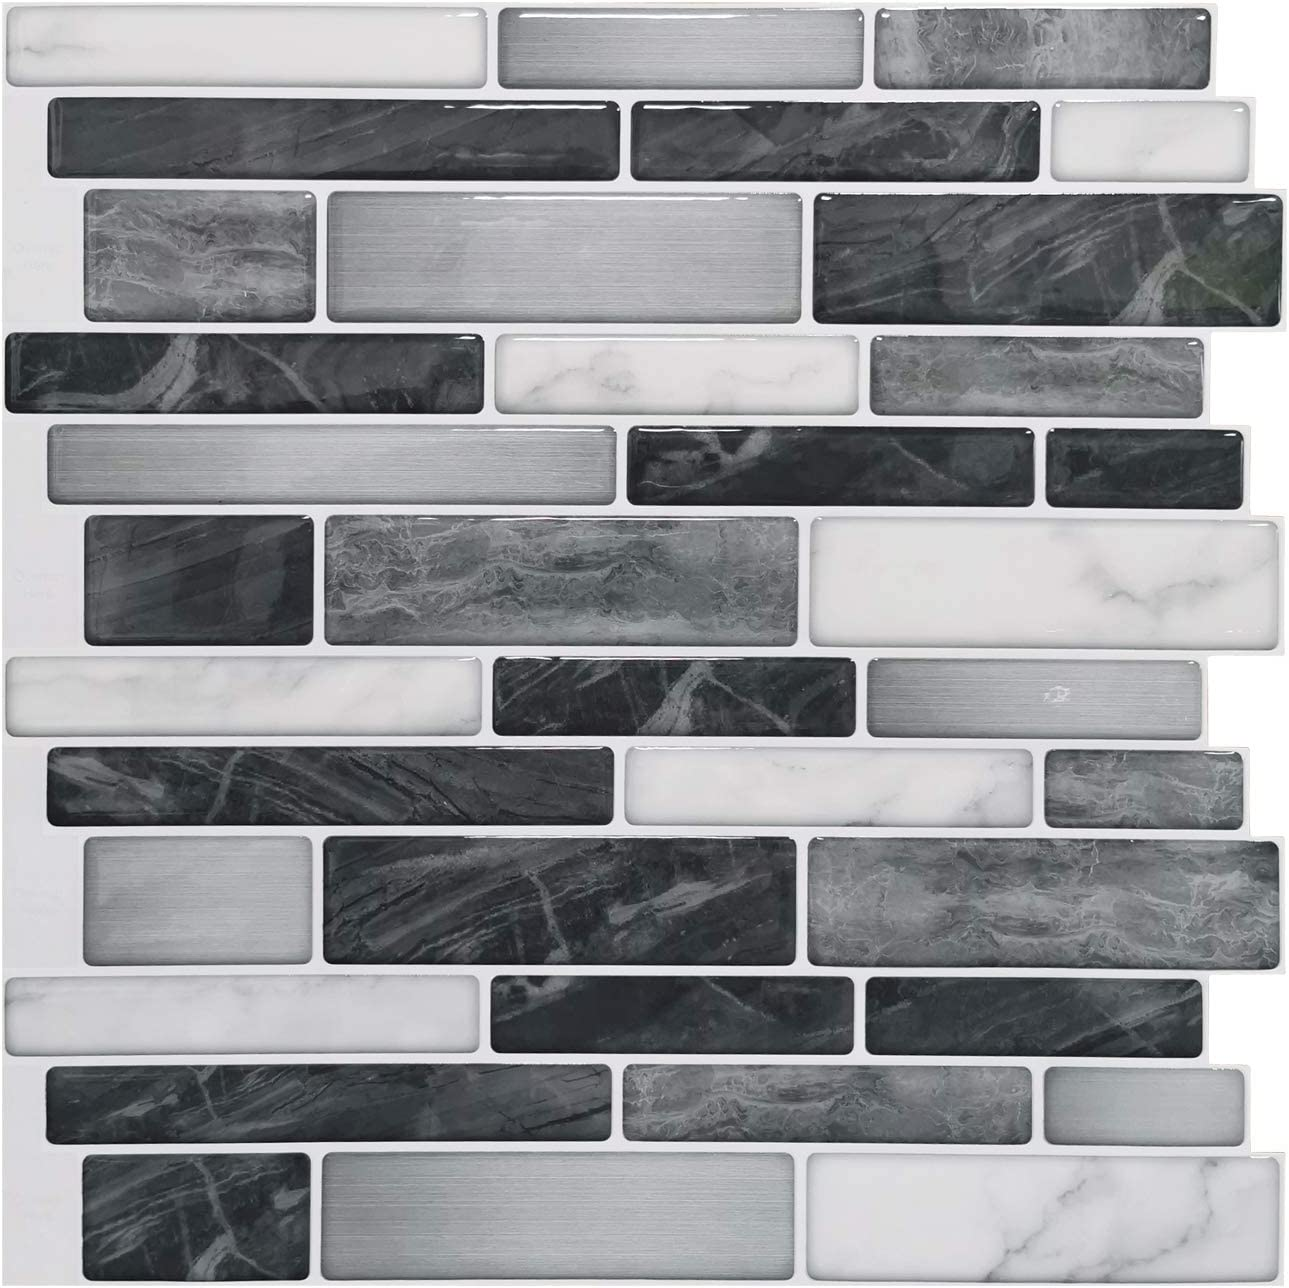 - Amazon.com: Art3d 10-Sheet Self-Adhesive Tile Backsplash For Kitchen, Vinyl  Decorative Tiles, 12